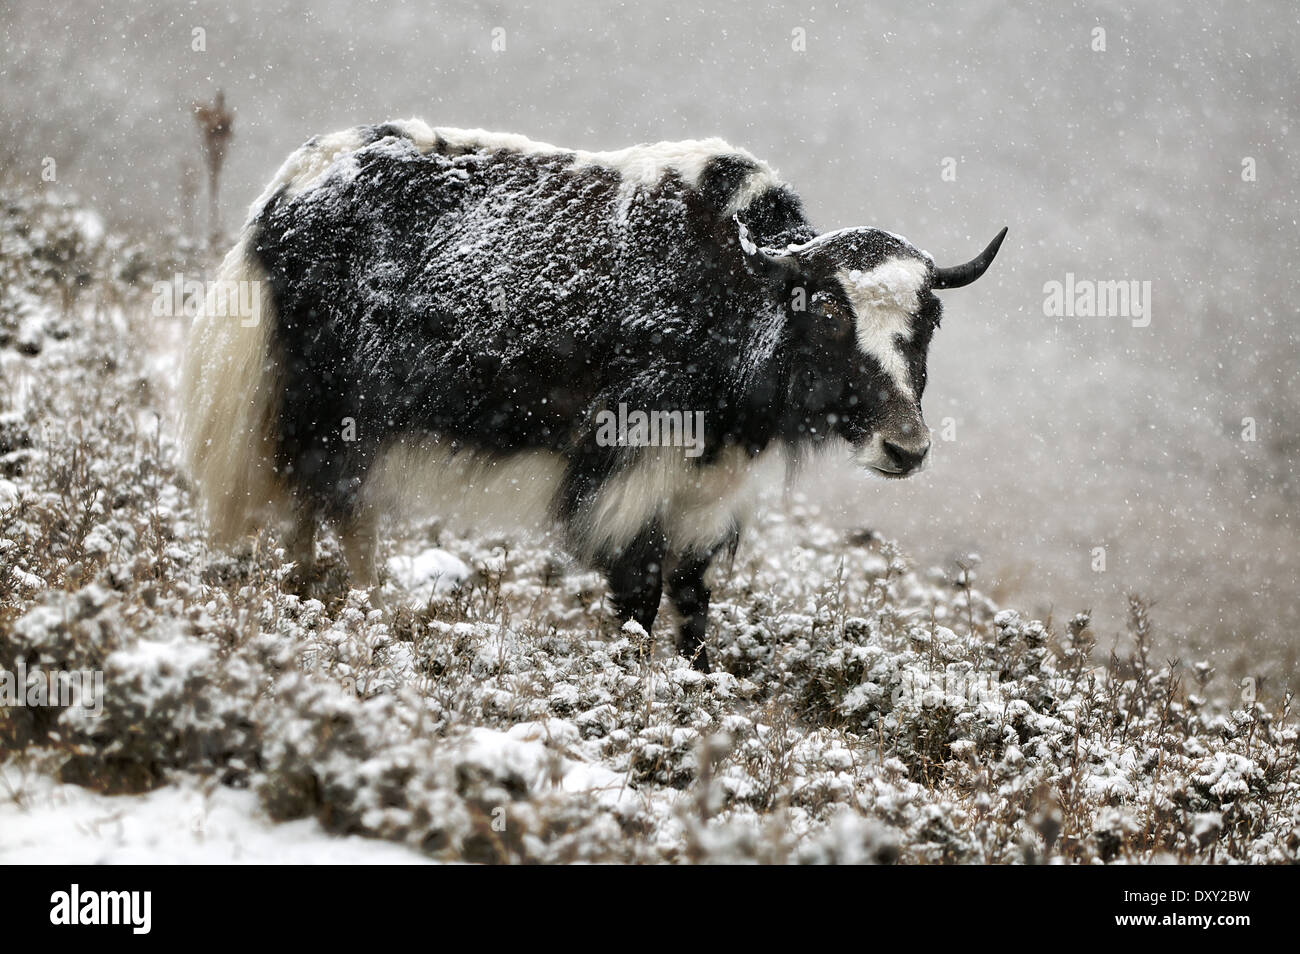 Yak in falling snow in Bhutan. Digitally Manipulated Image. Stylised by sharpening and enhancing color. - Stock Image